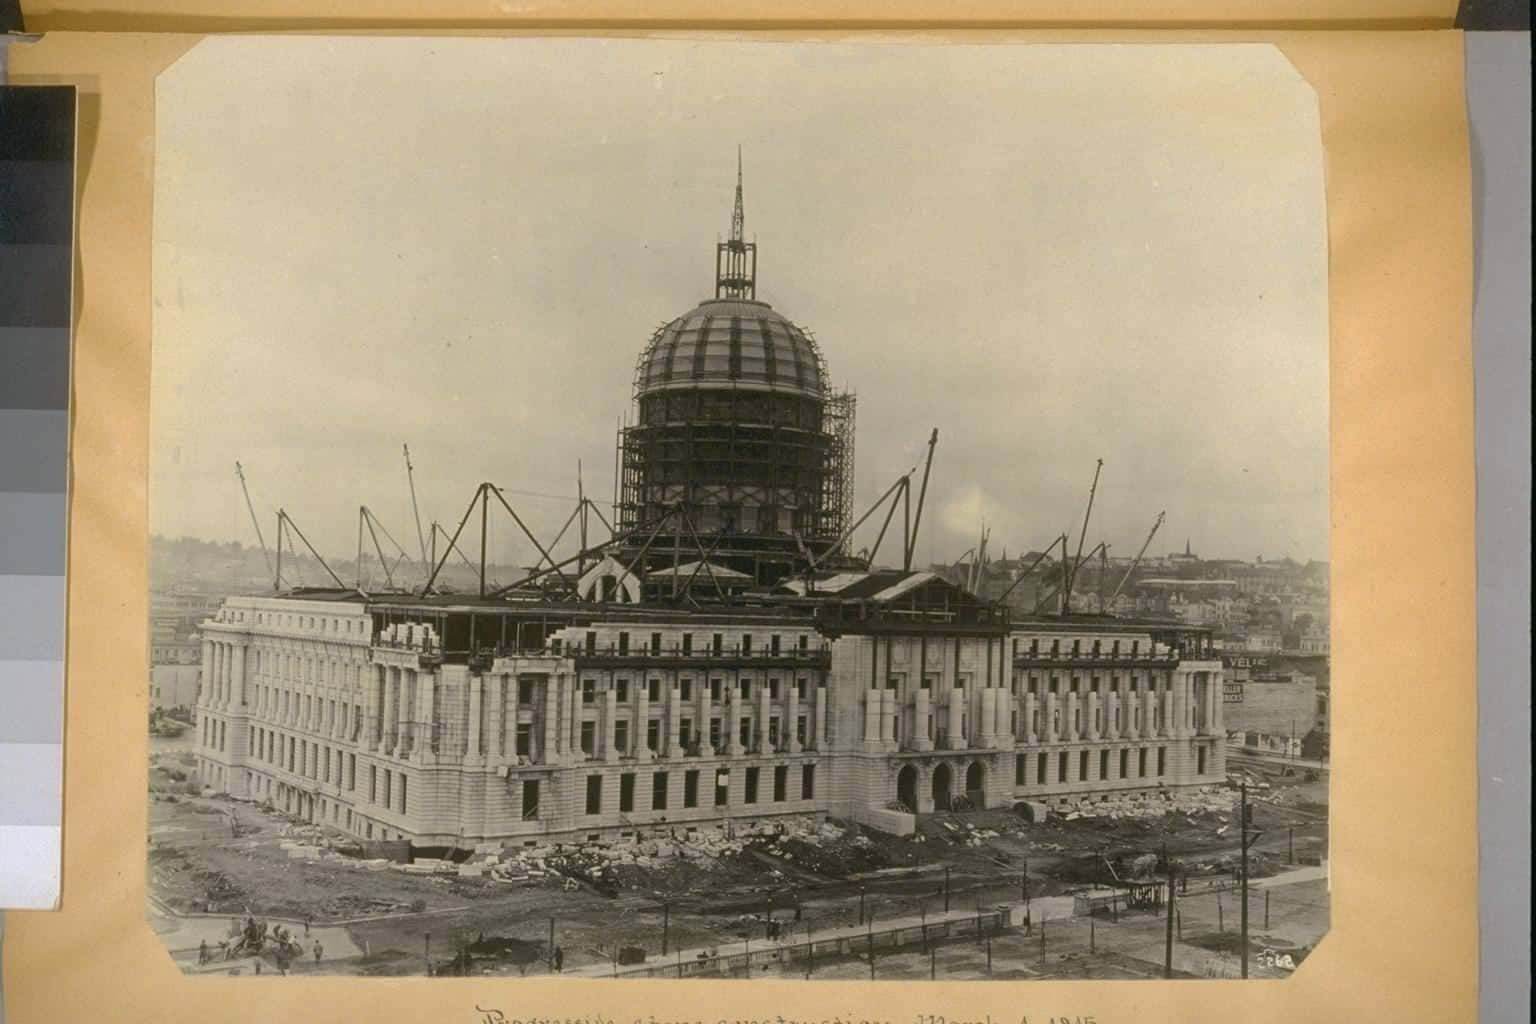 San Francisco's new city hall during construction 1914